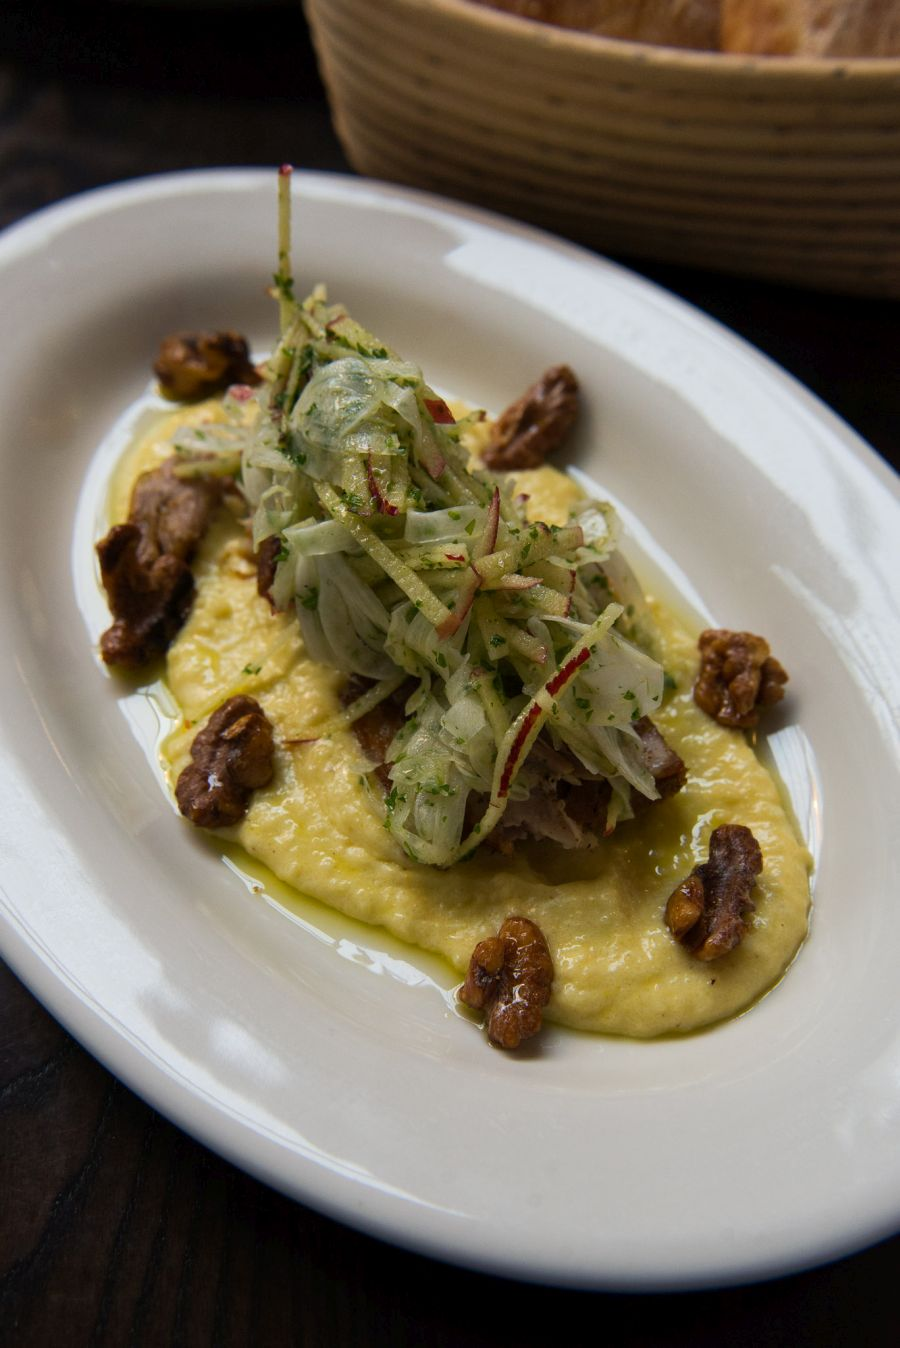 Pulled pork, white polenta, apple and fennel salad, pollen salt (NZ$26.50)